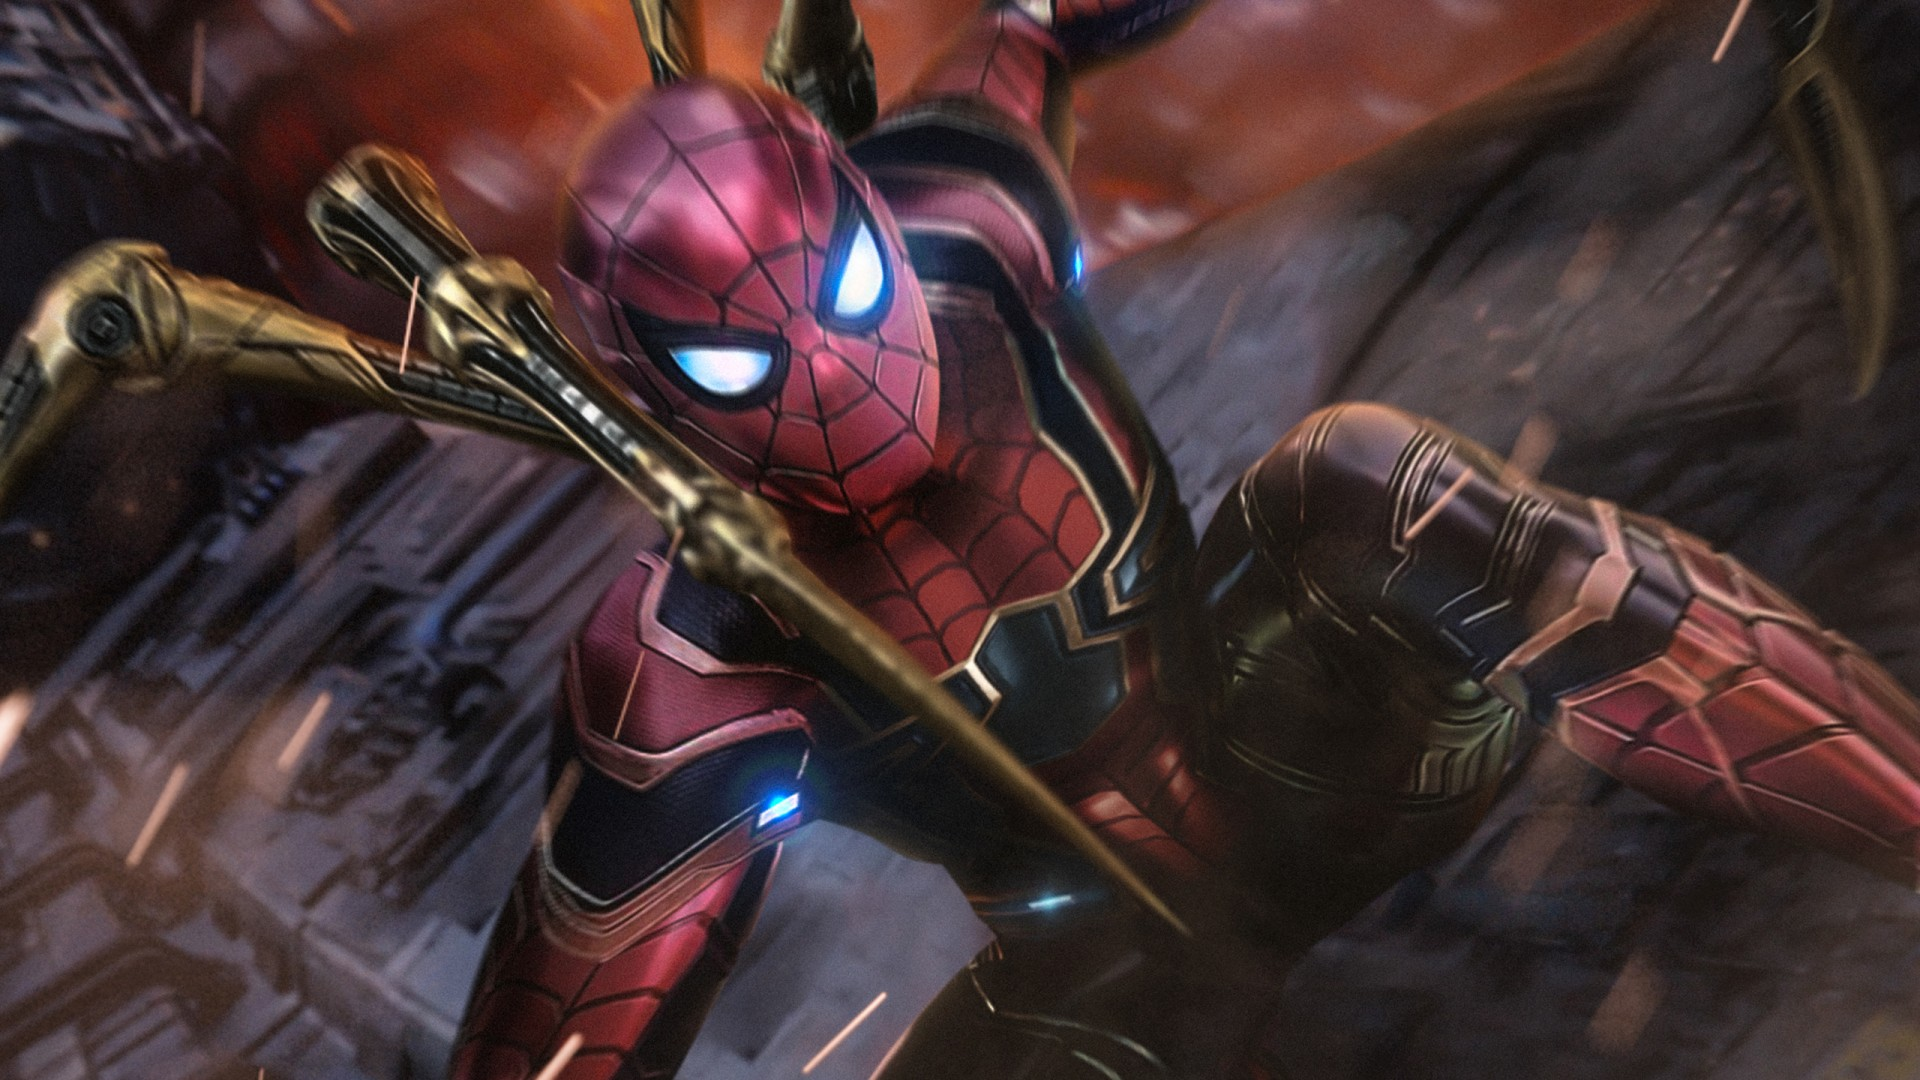 Iphone 5 Space Wallpaper Hd Iron Spider Fan Art Wallpapers Hd Wallpapers Id 26342